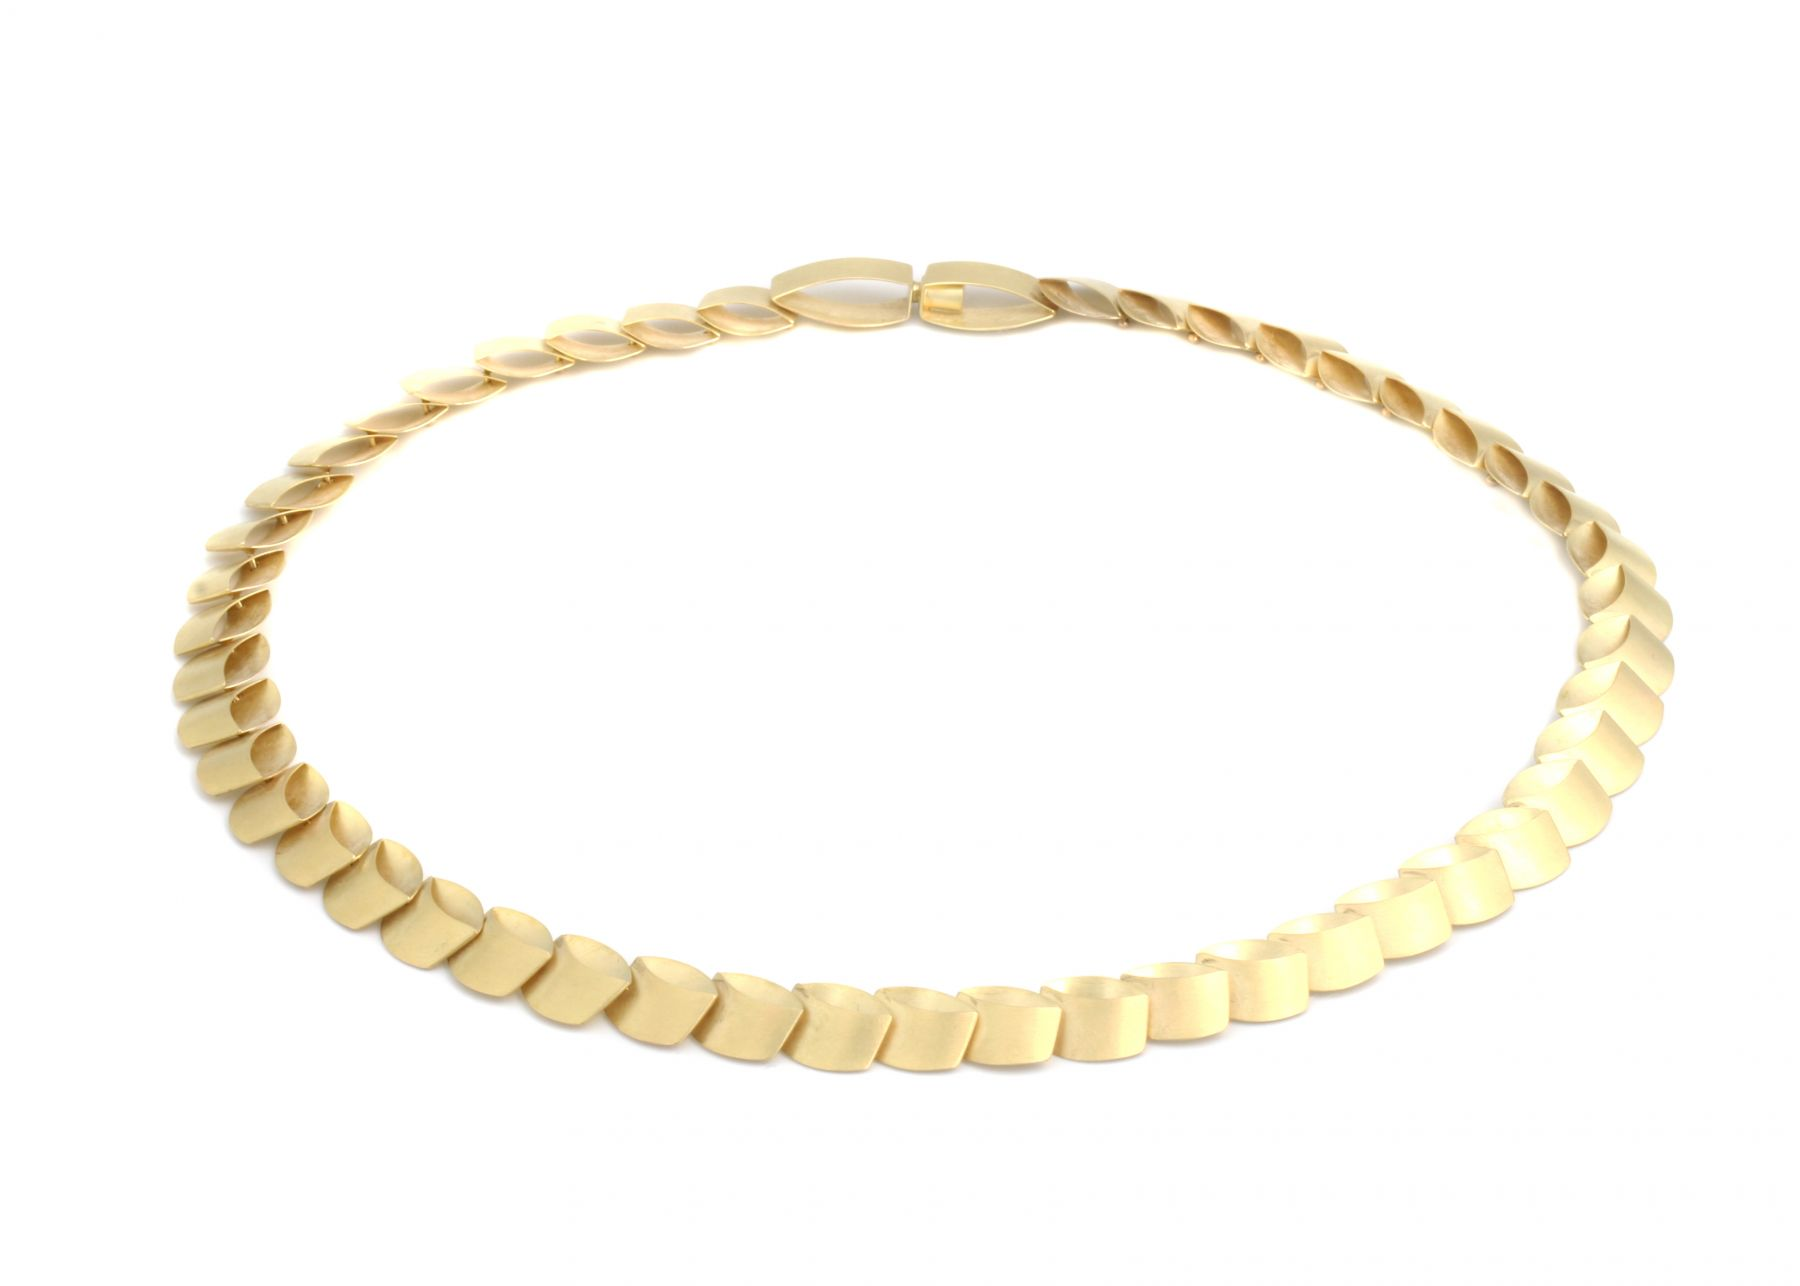 Dorothee Striffler, gold necklace